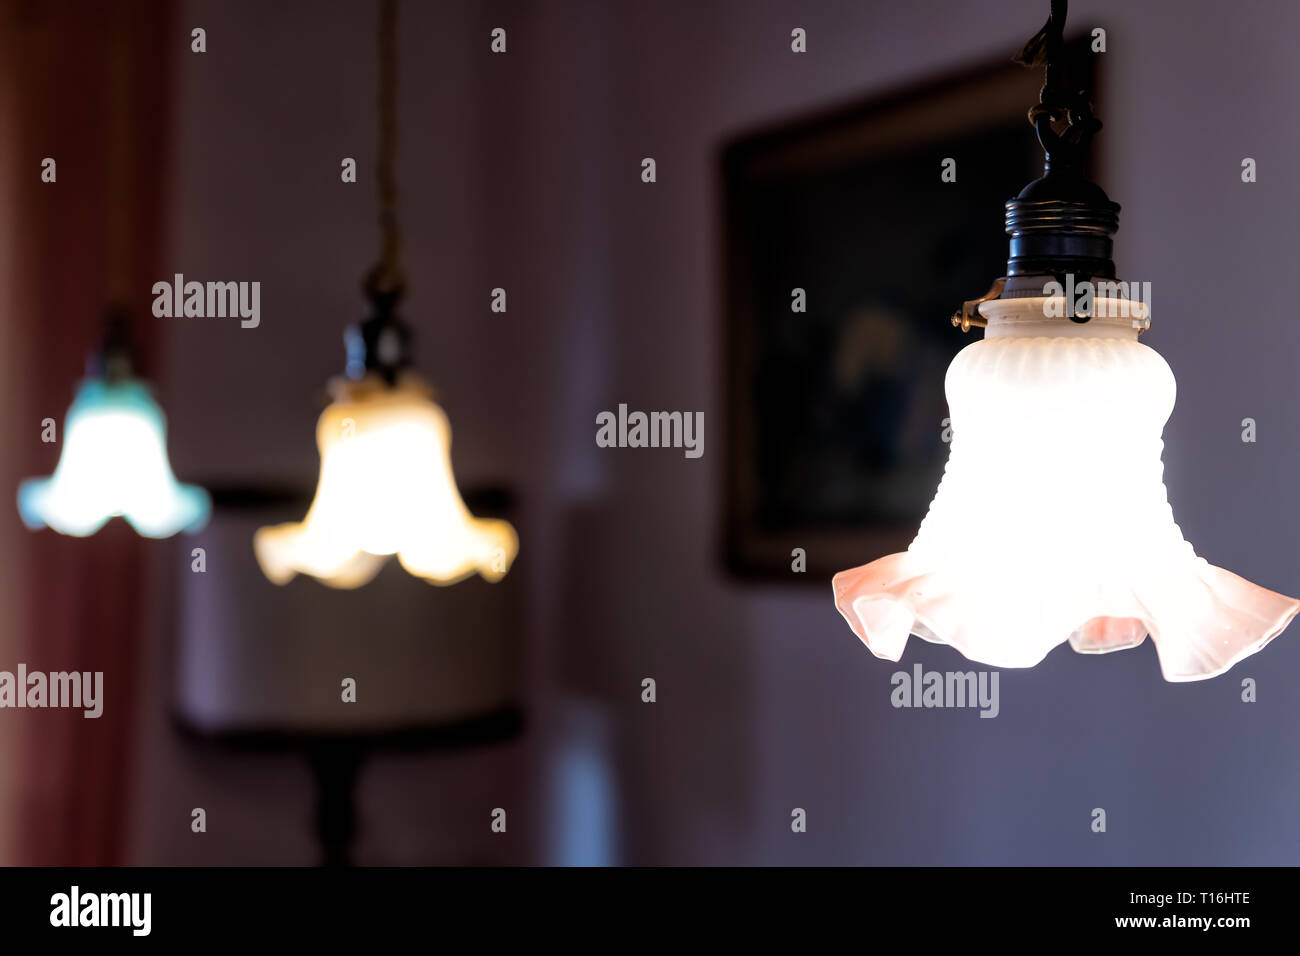 Closeup of three hanging ceiling lamps in home with dark room and